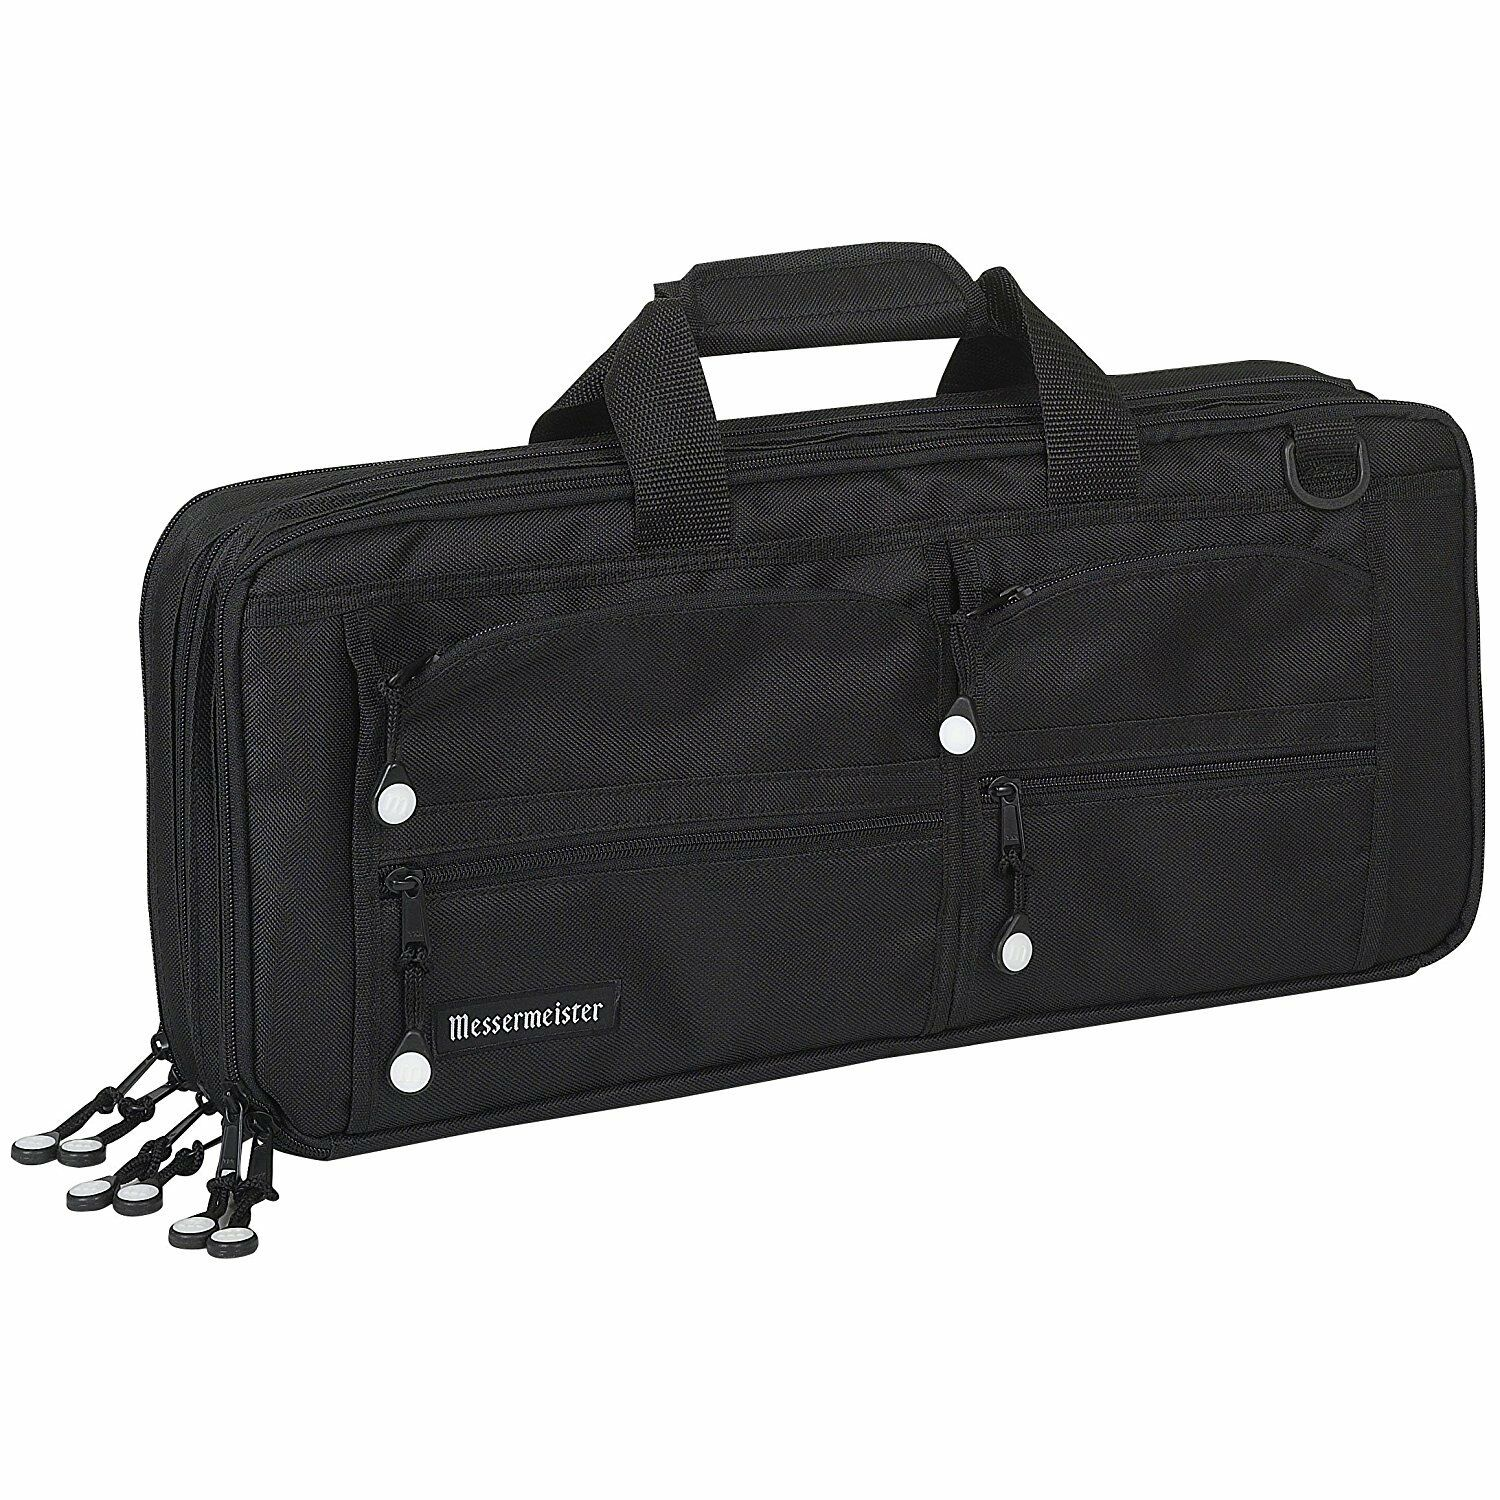 Messermeister 18 Poche Meister CHEF'S KNIFE STORAGE CASE bagage-Noir